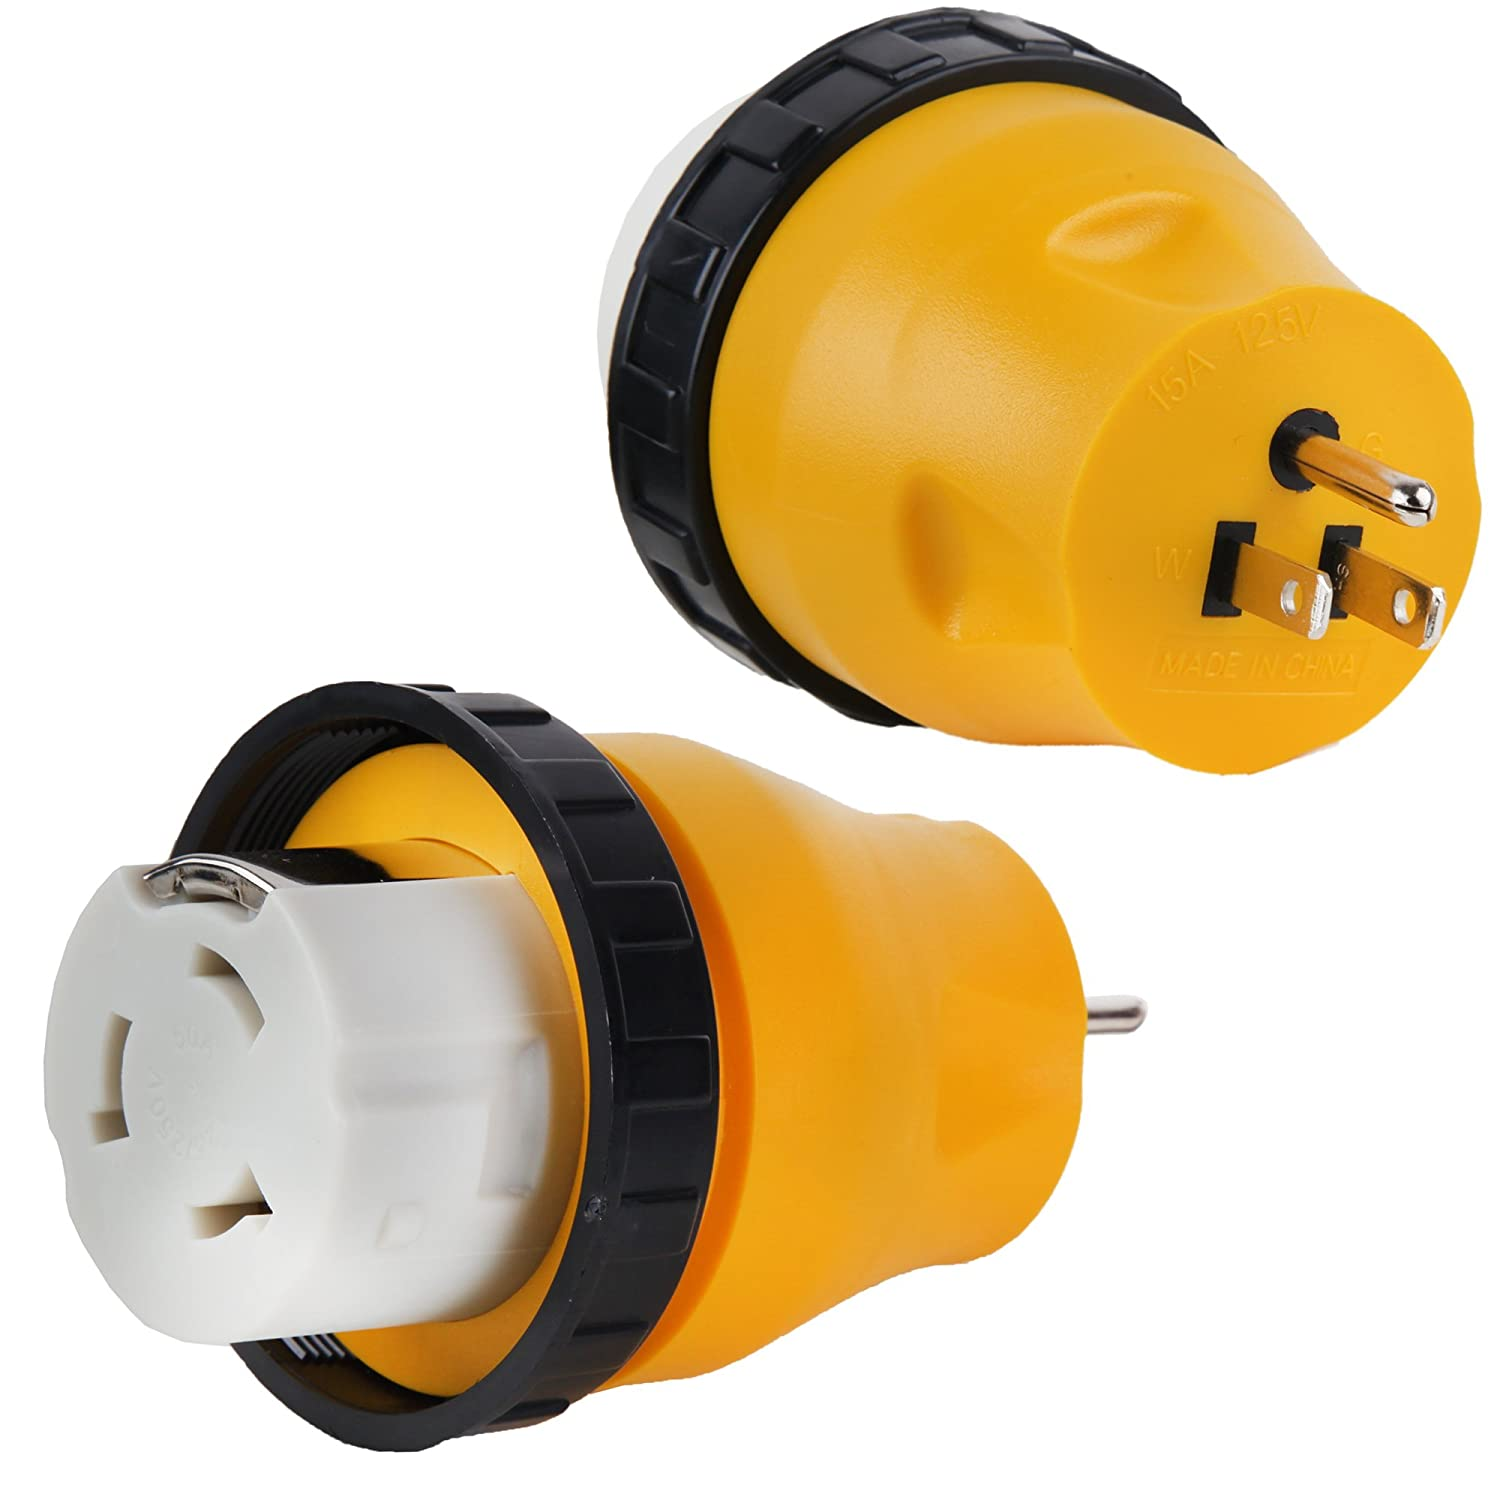 Proline 15amp Male to 50amp Female Twist Lock Power Cord Adapter RV, Camper, Electrical Adapter NEMA 5-15P to SS2-50R DRM Products Inc.